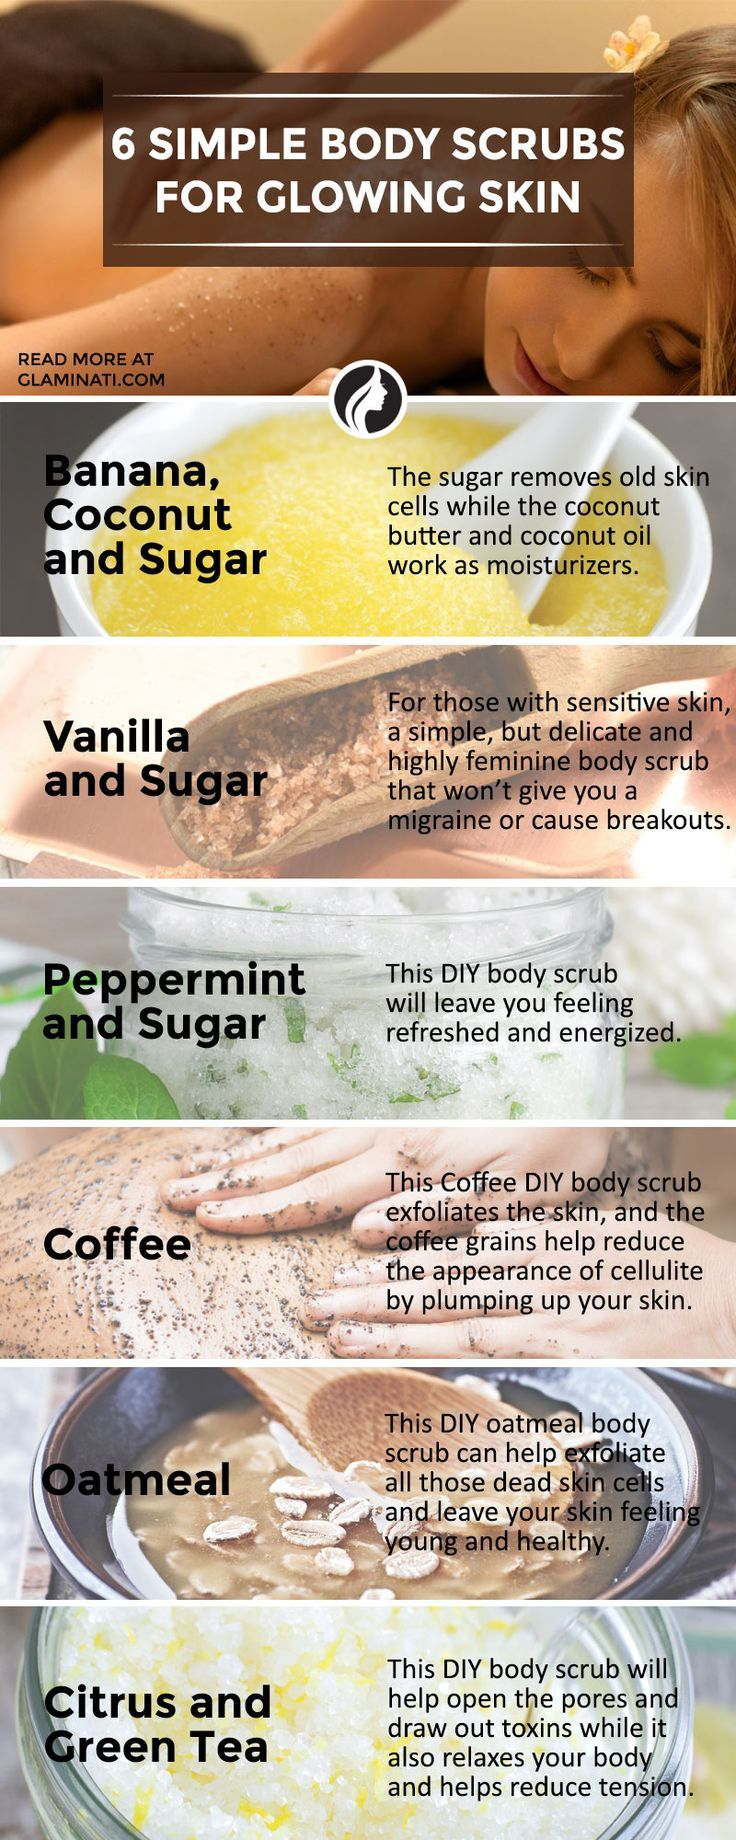 There are plenty of simple DIY body scrubs recipes that you can easily make at h...